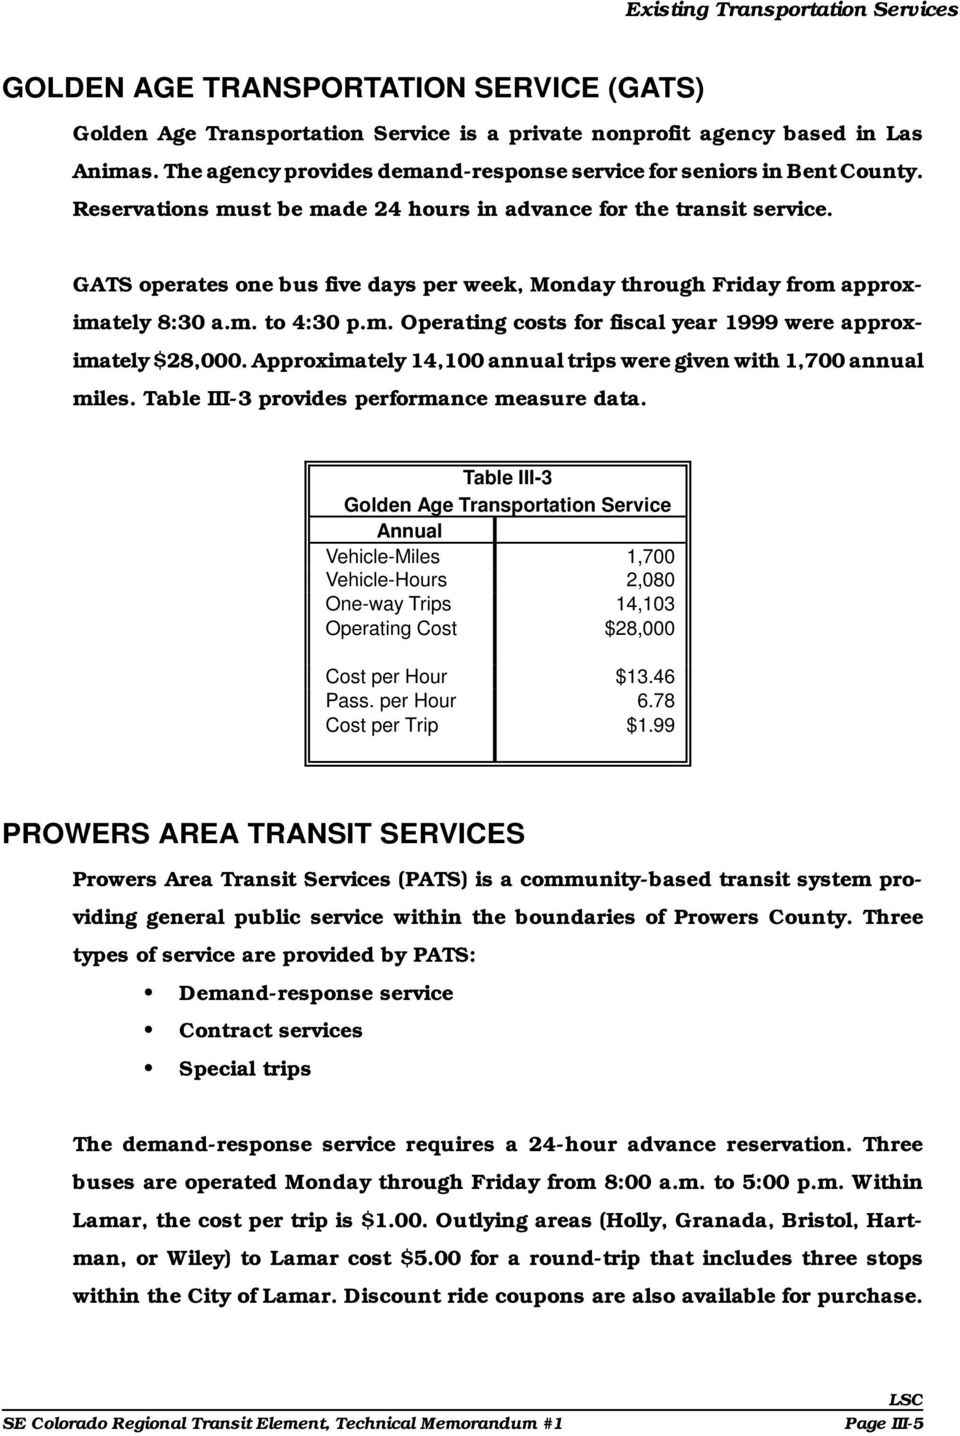 GATS operates one bus five days per week, Monday through Friday from approximately 8:30 a.m. to 4:30 p.m. Operating costs for fiscal year 1999 were approximately $28,000.